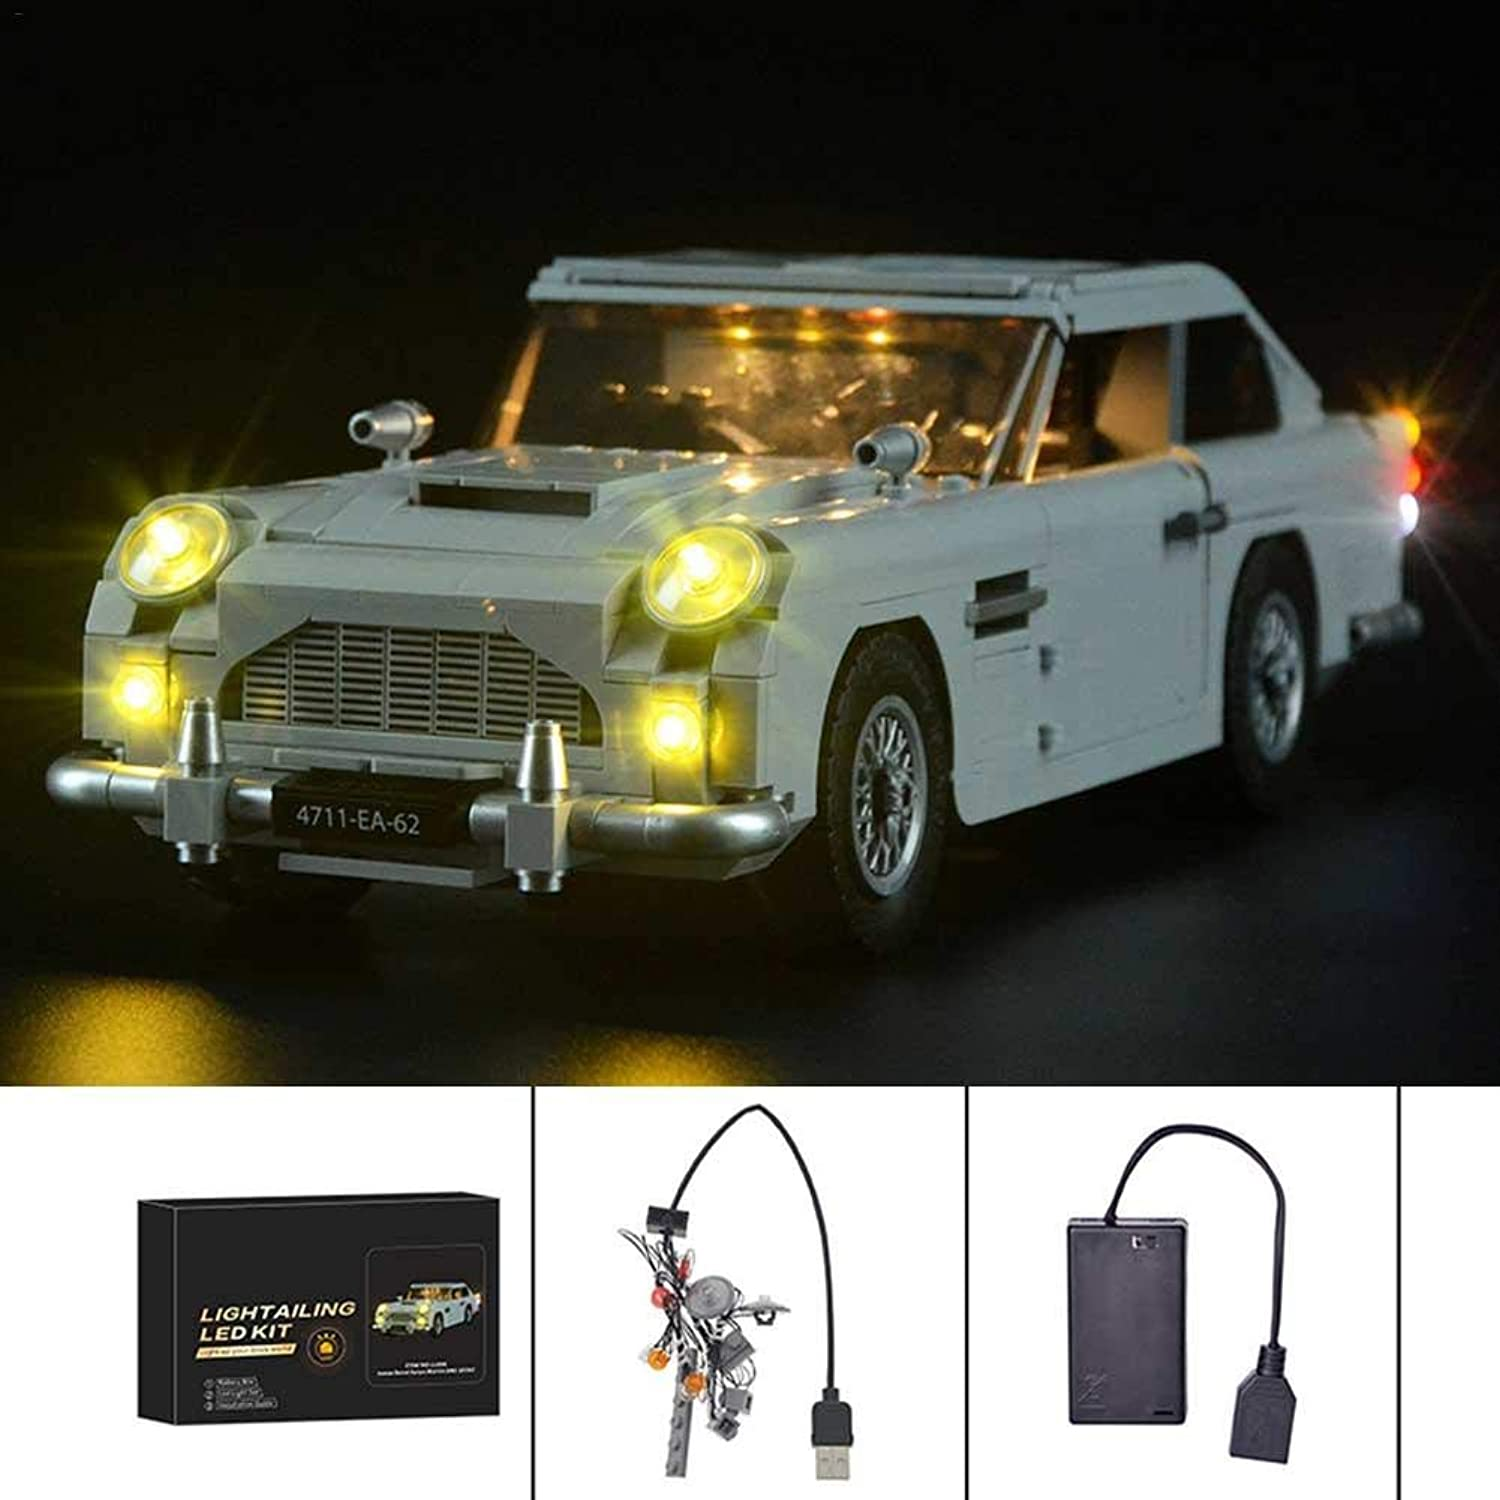 Beperfectly For-Lego-James-Bond-Bricks-Toys-10262 LED-Light-Kit-For-Lego-James-Bond-Bricks-Toys-10262-Aston-Martin-DB5-Lighting(Lego Set not Included)